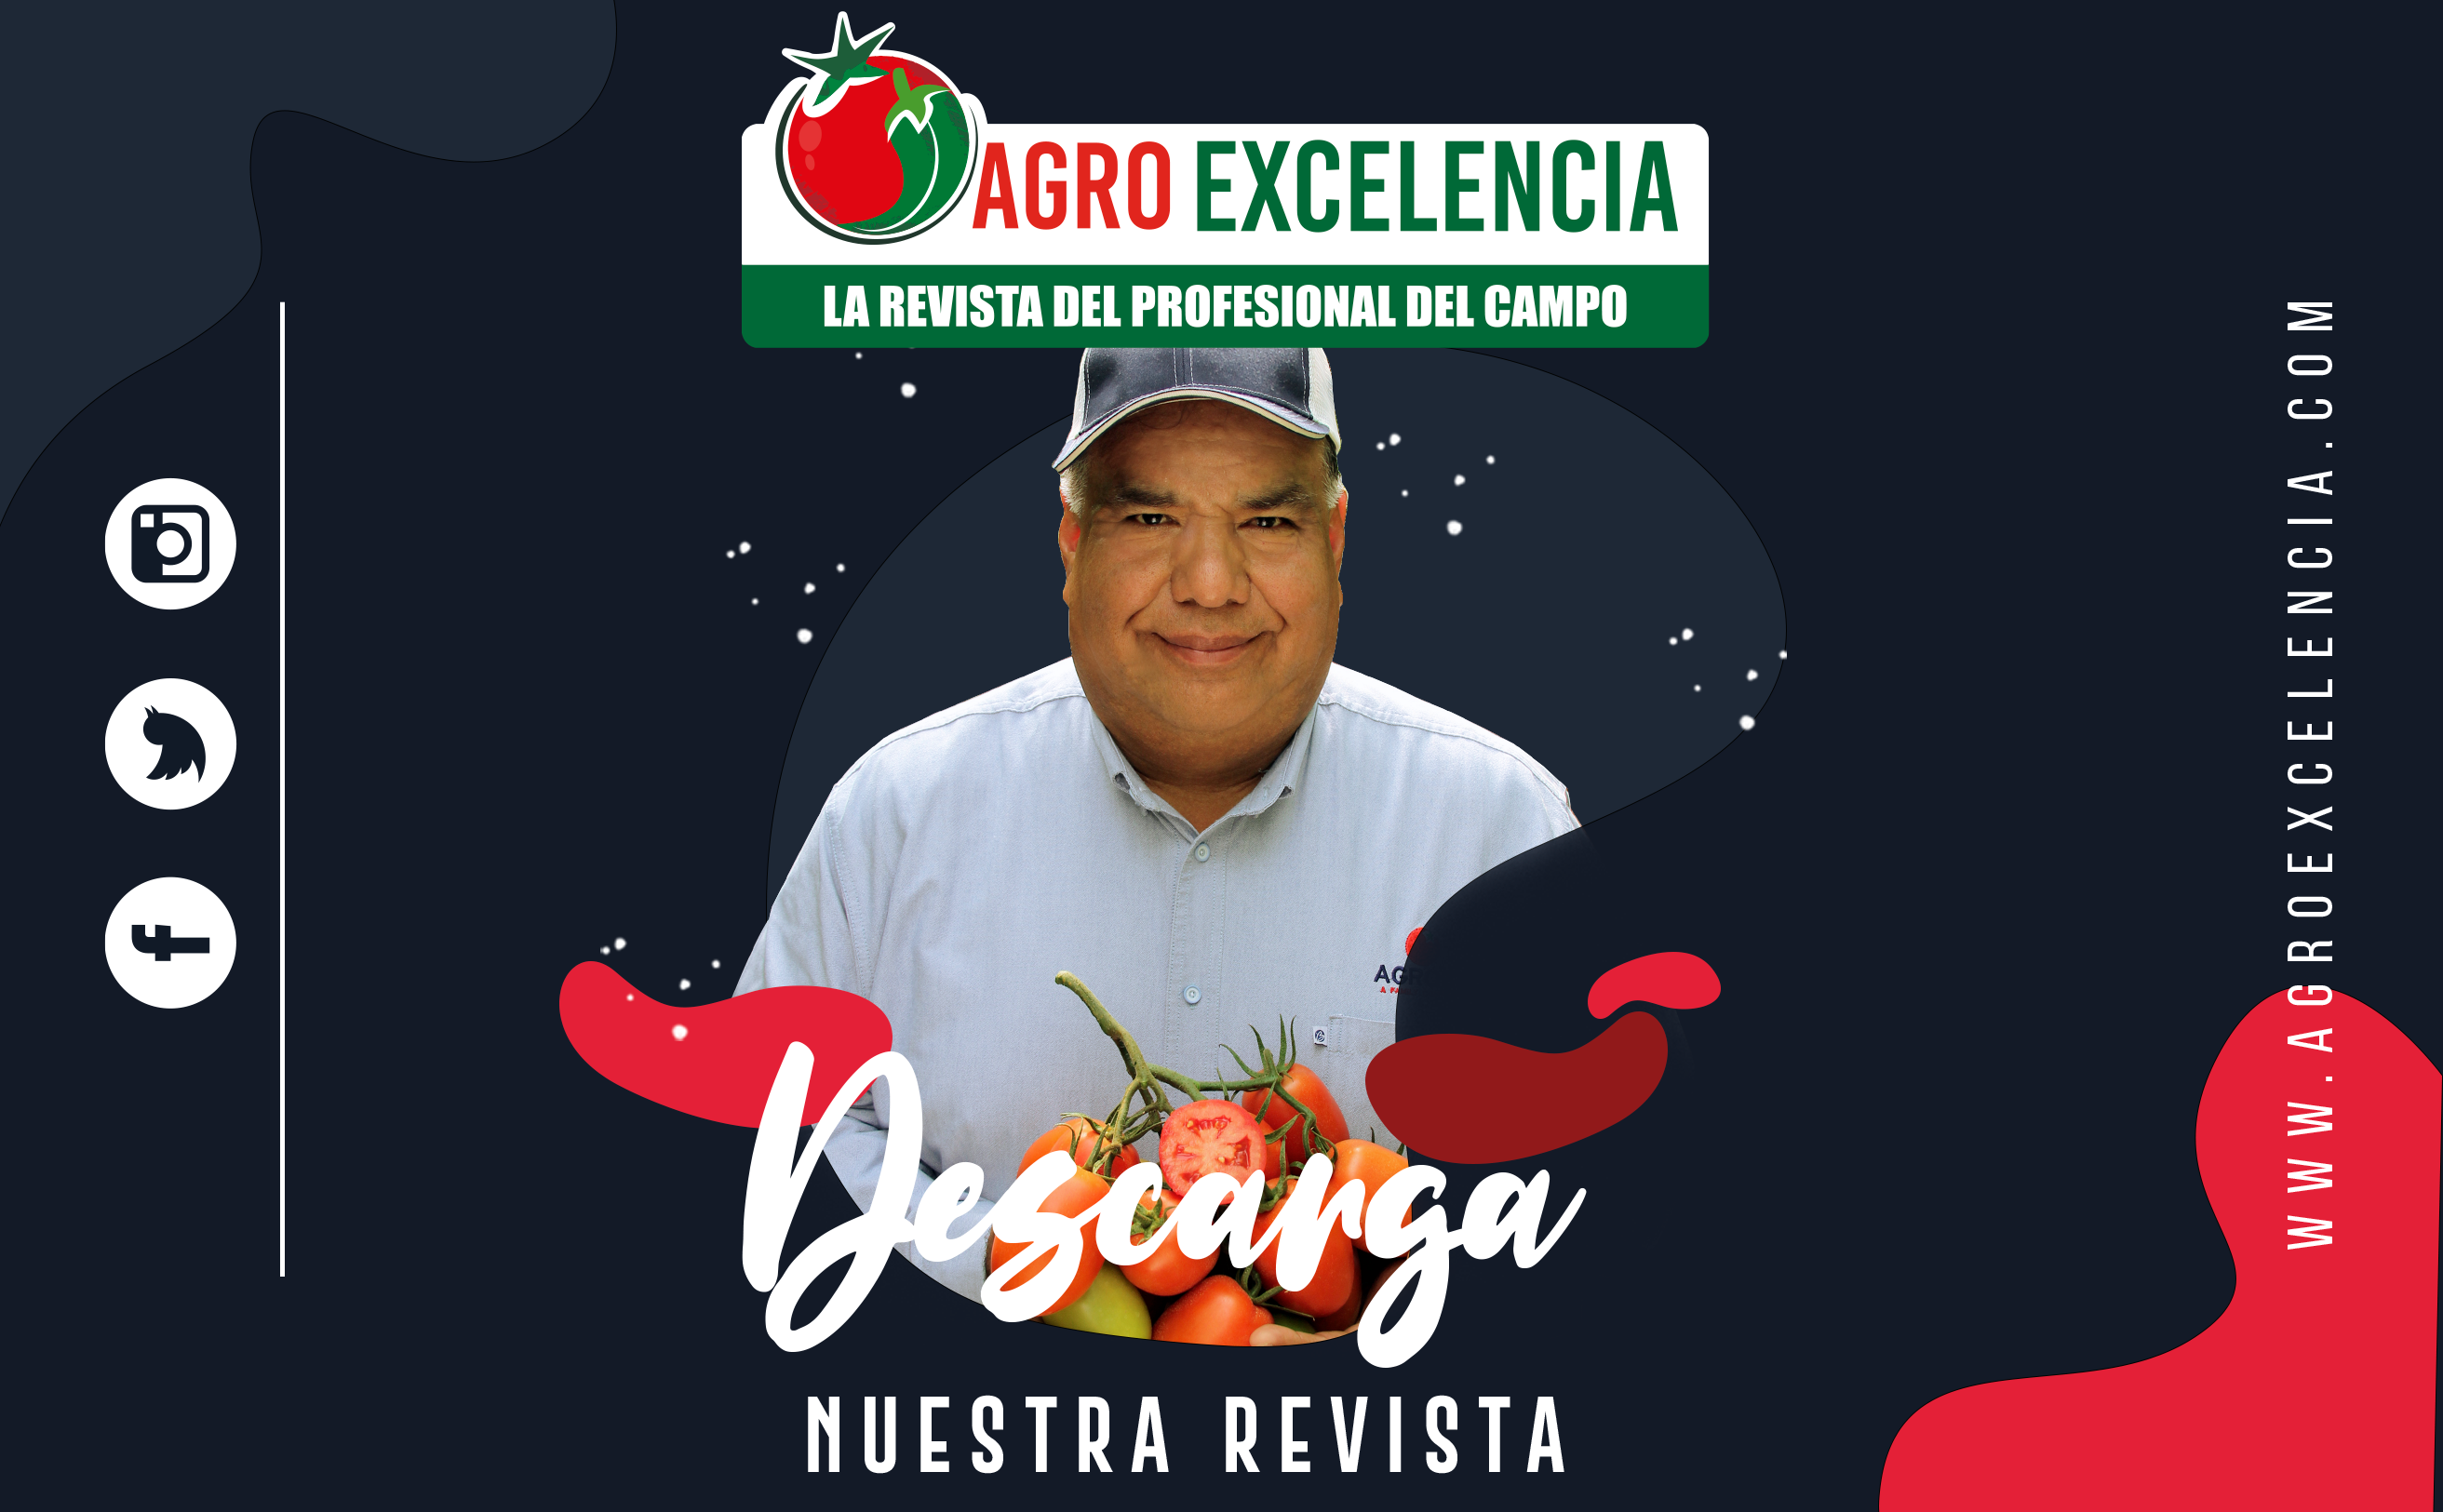 https://agroexcelencia.com/wp-content/uploads/2020/04/1-1.png